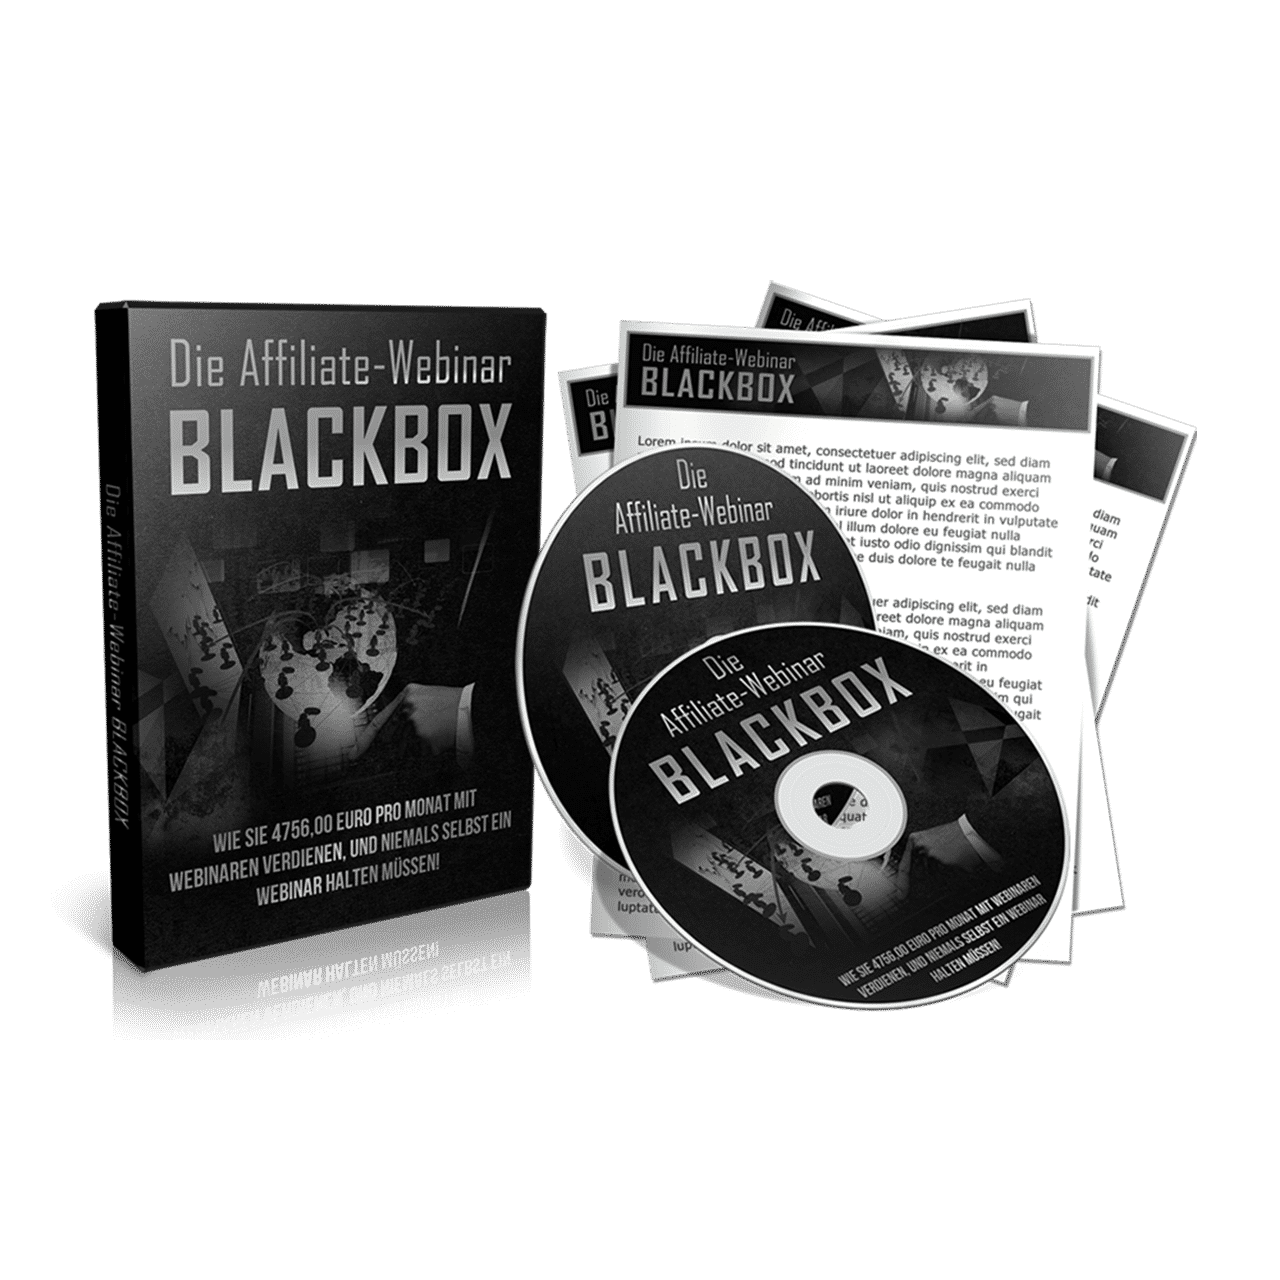 Die Affiliate Webinar Blackbox Ralf Schmitz